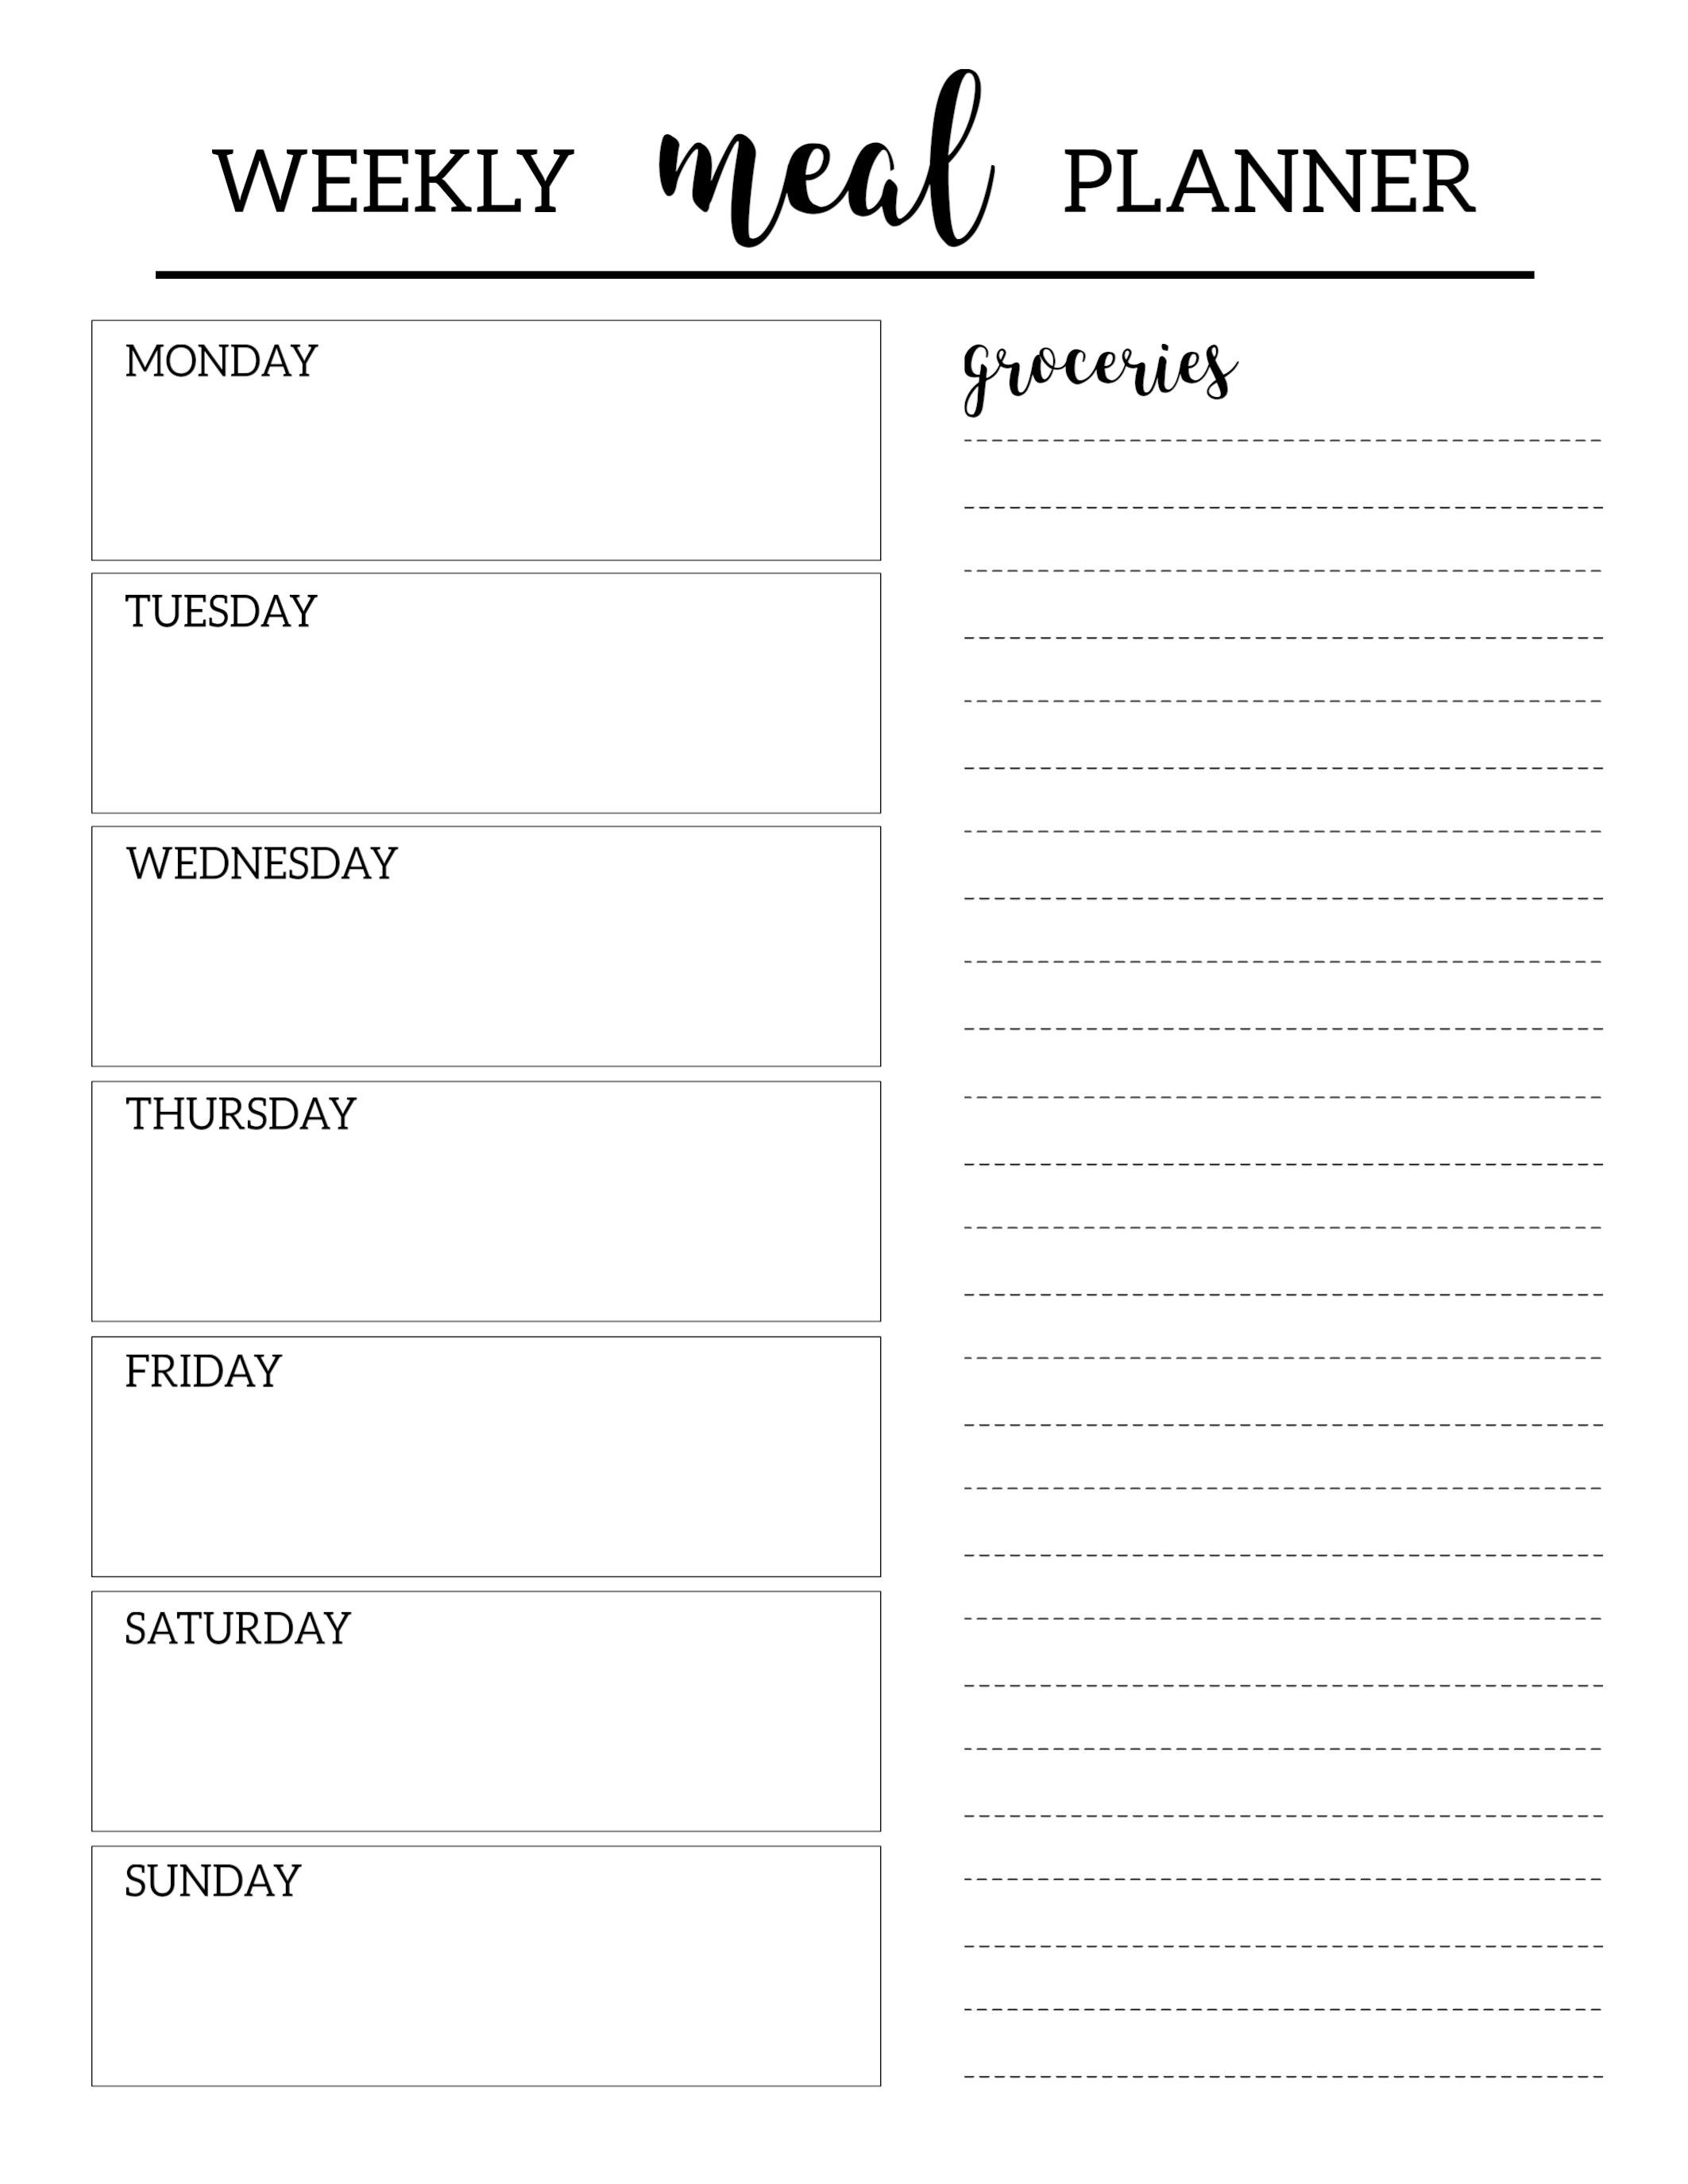 Free Printable Meal Planner Template   Paper Trail Design